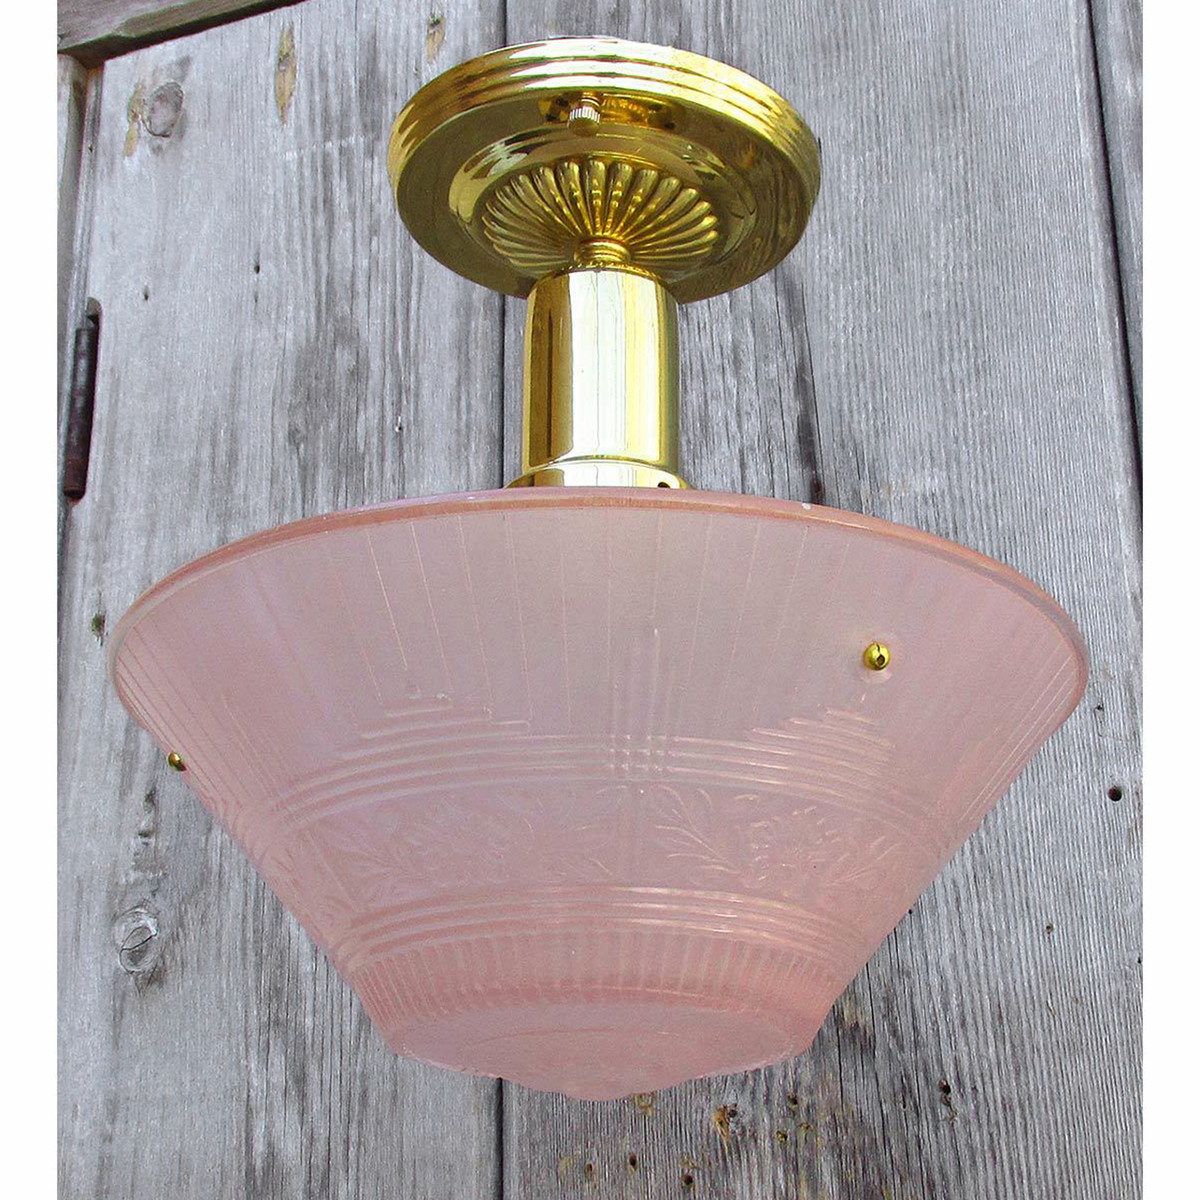 L15066 - Art Moderne Ceiling Light Fixture With Antique Bowl Shade